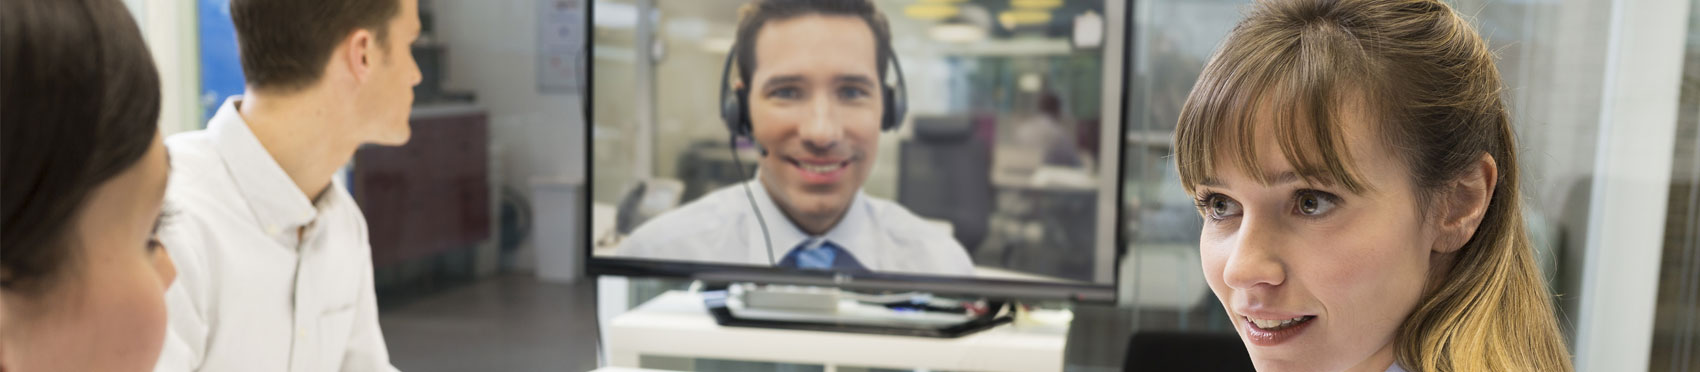 Cisco WebEx Meetings, sistema videoconferencia seguro